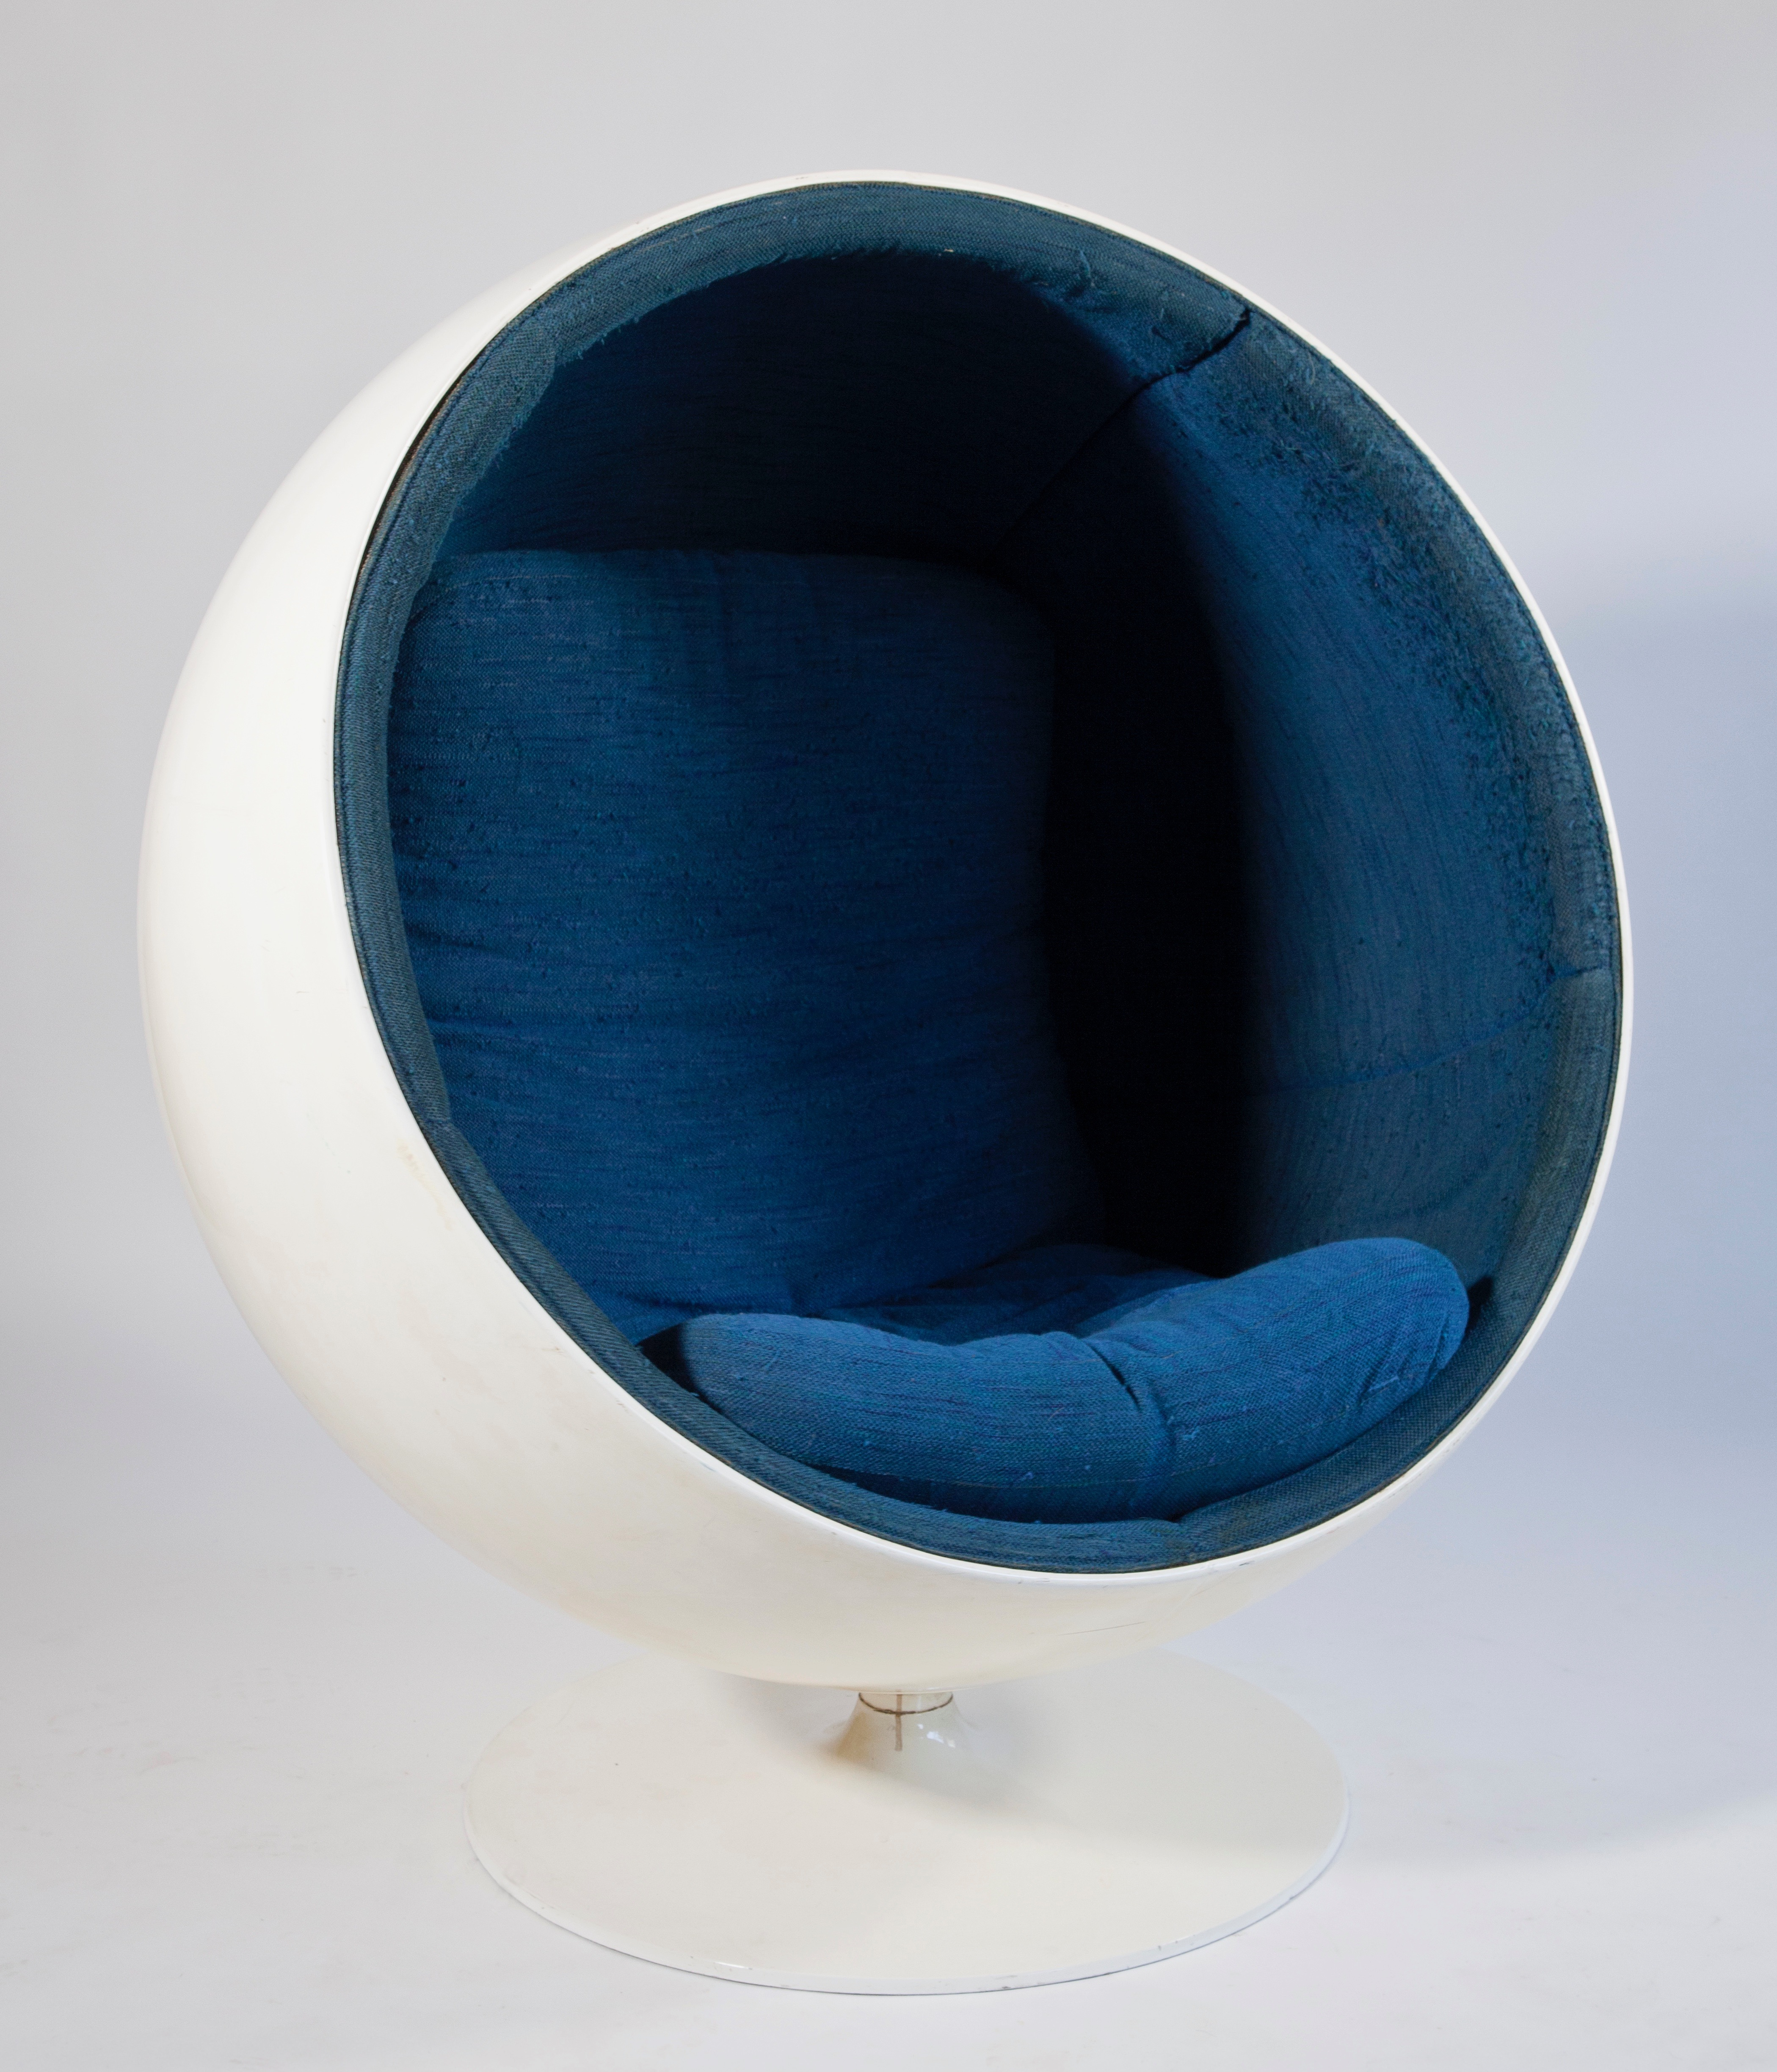 Space Age Design.Ball Chair By Eero Aarnio Style Icon From The Space Age